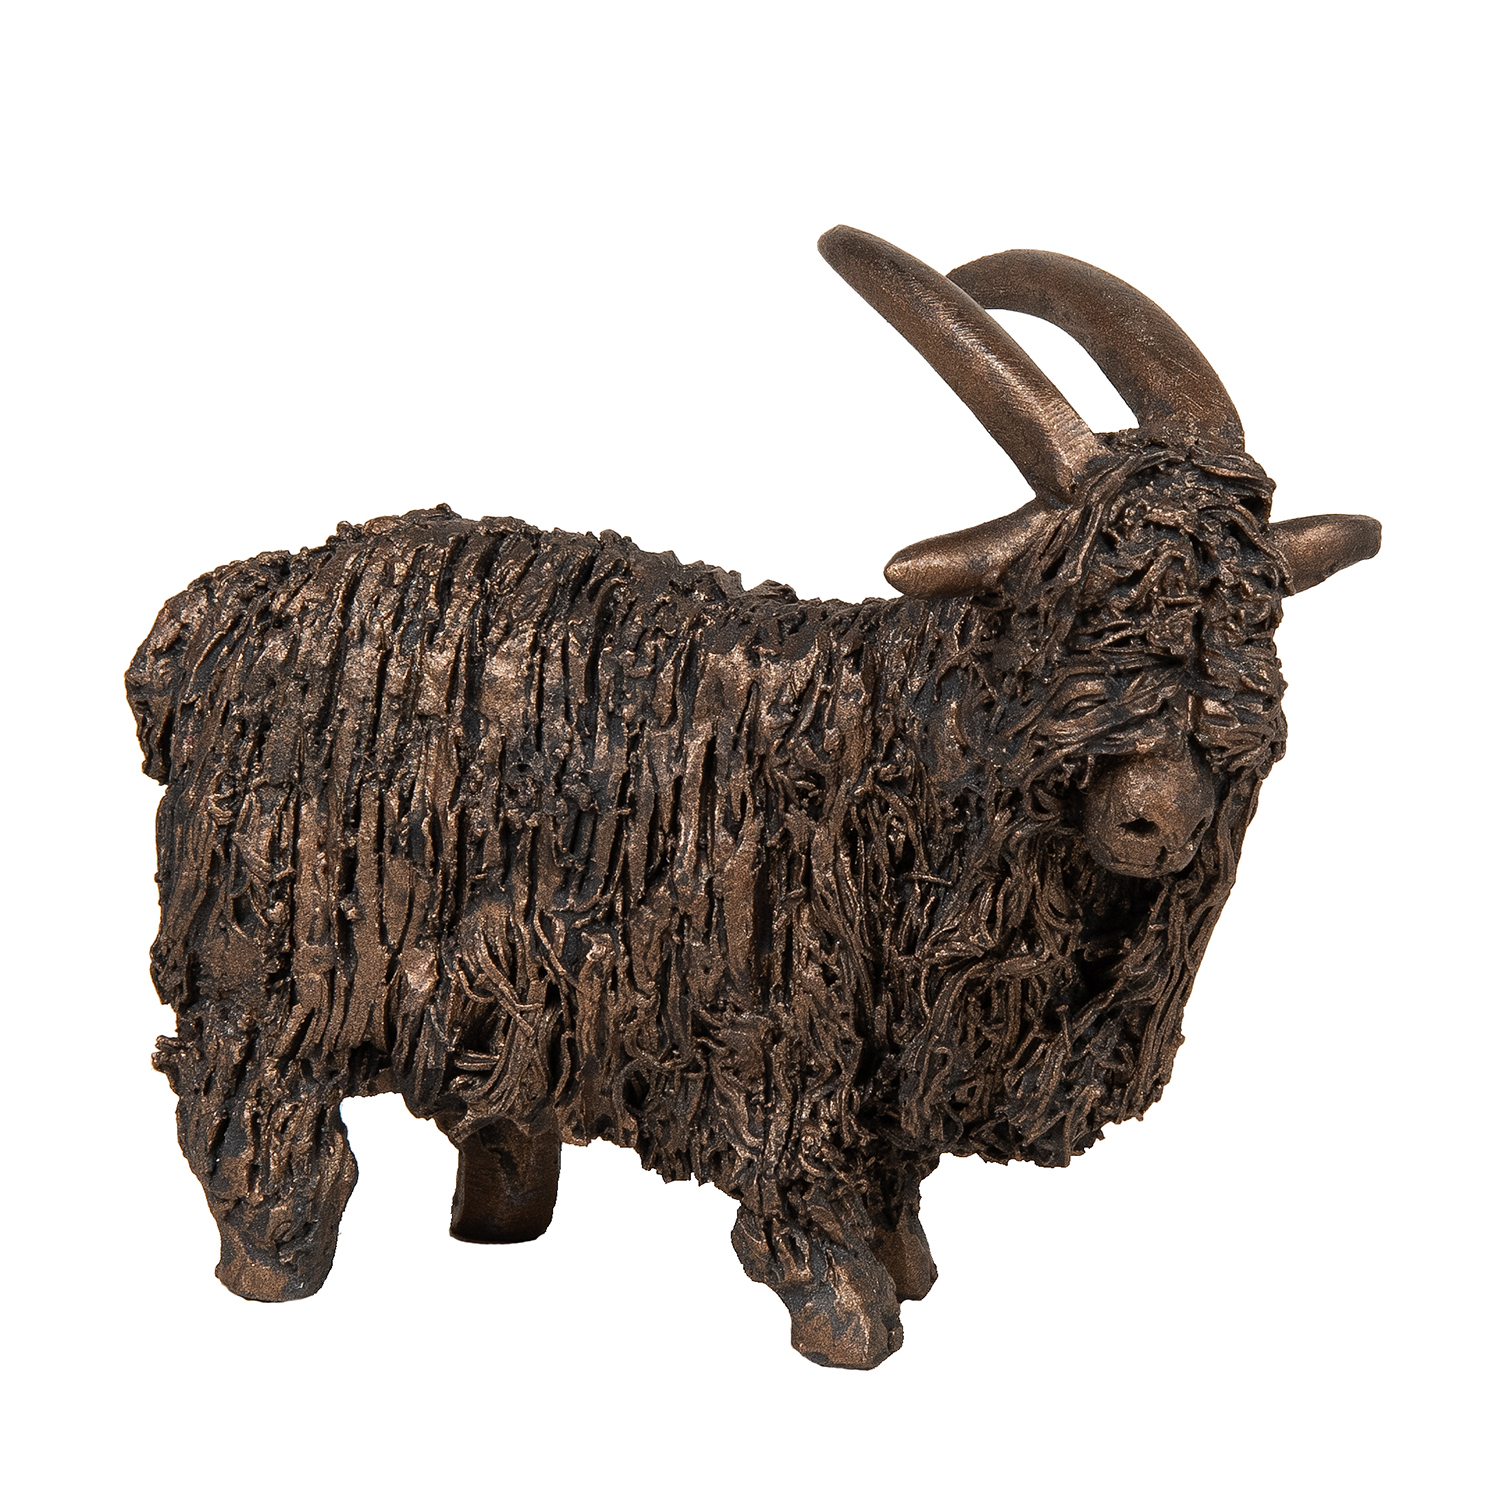 Frith Sculpture – Feral Goat Standing in Bronze Resin in Gift Box